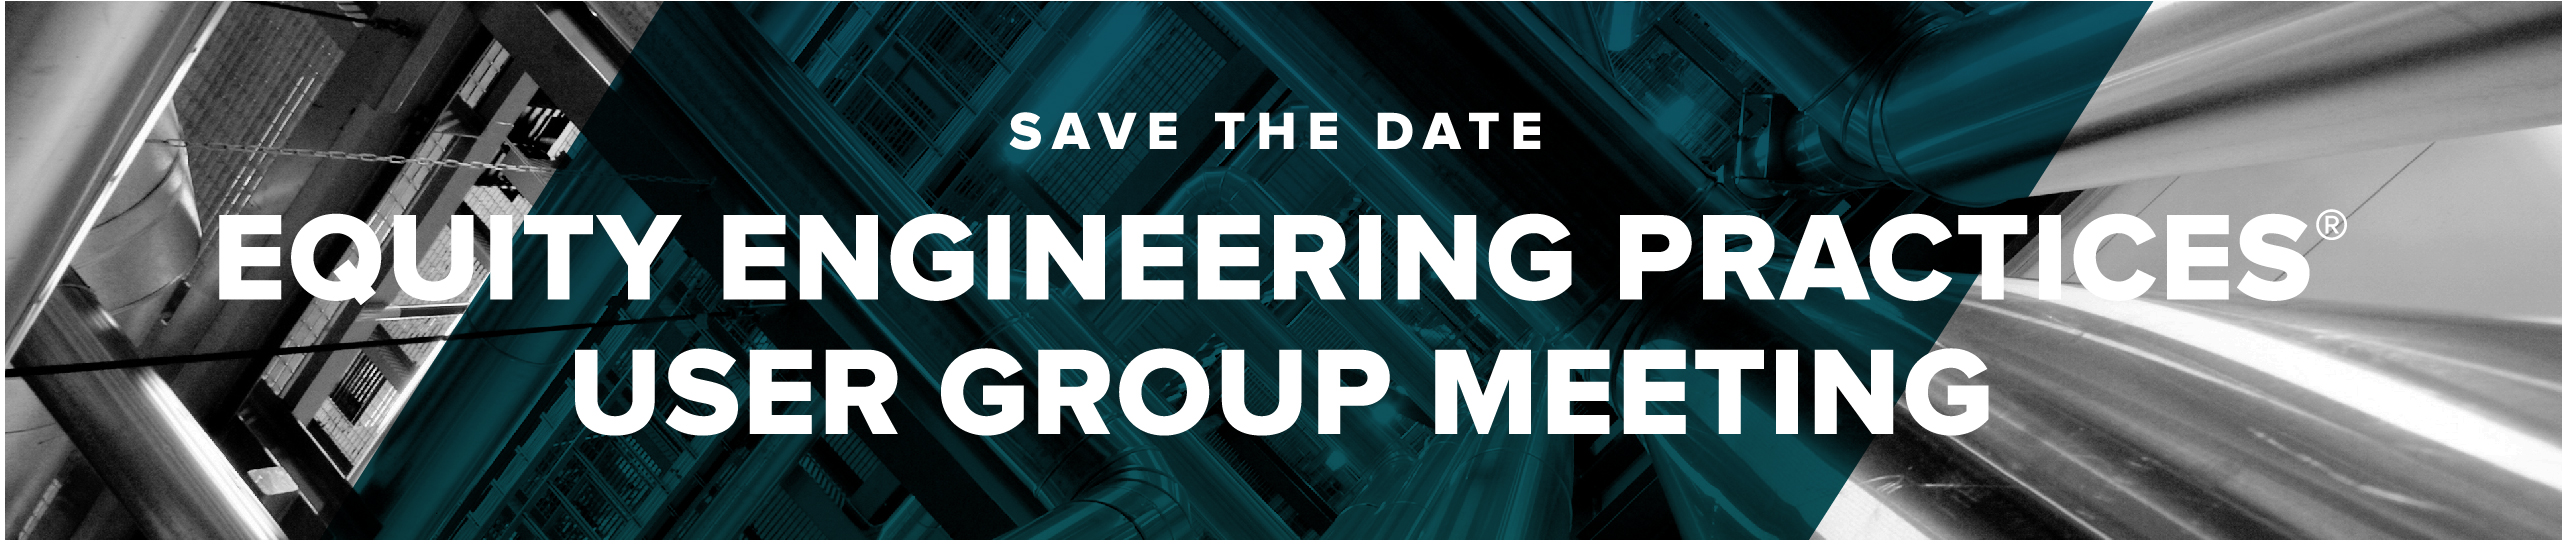 2018 Equity Engineering Practices User Group